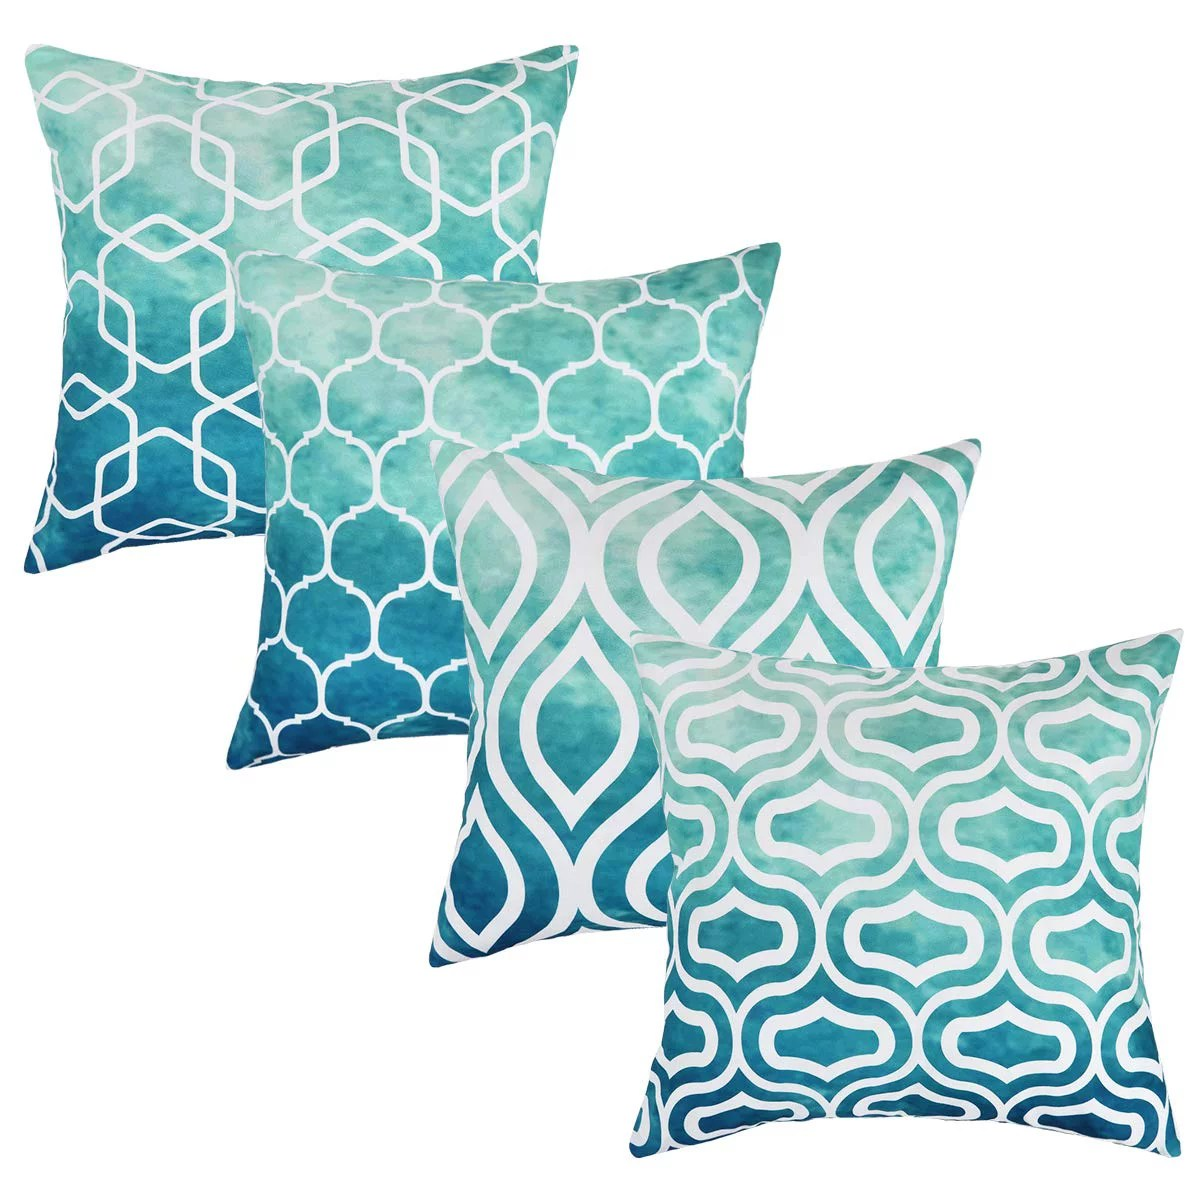 set of 4 pillow covers 18 x 18 teal decorative cushion cover for couch square design throw pillow case for sofa home office by tayyakoushi